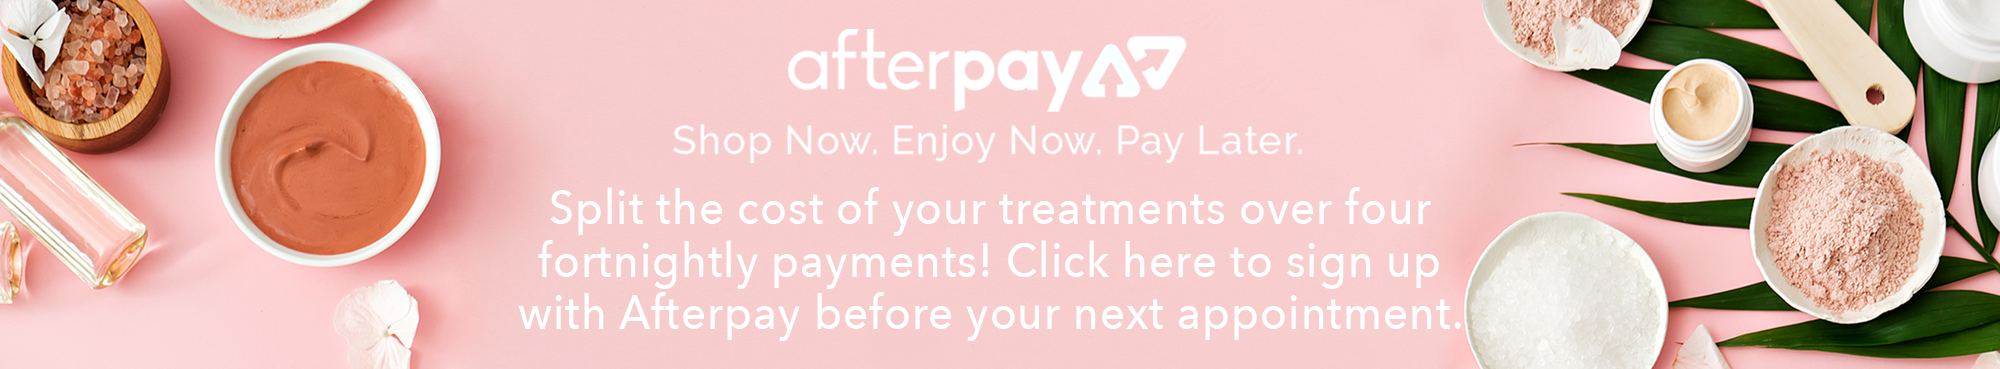 Afterpay - Sign Up Now Site Banner.png